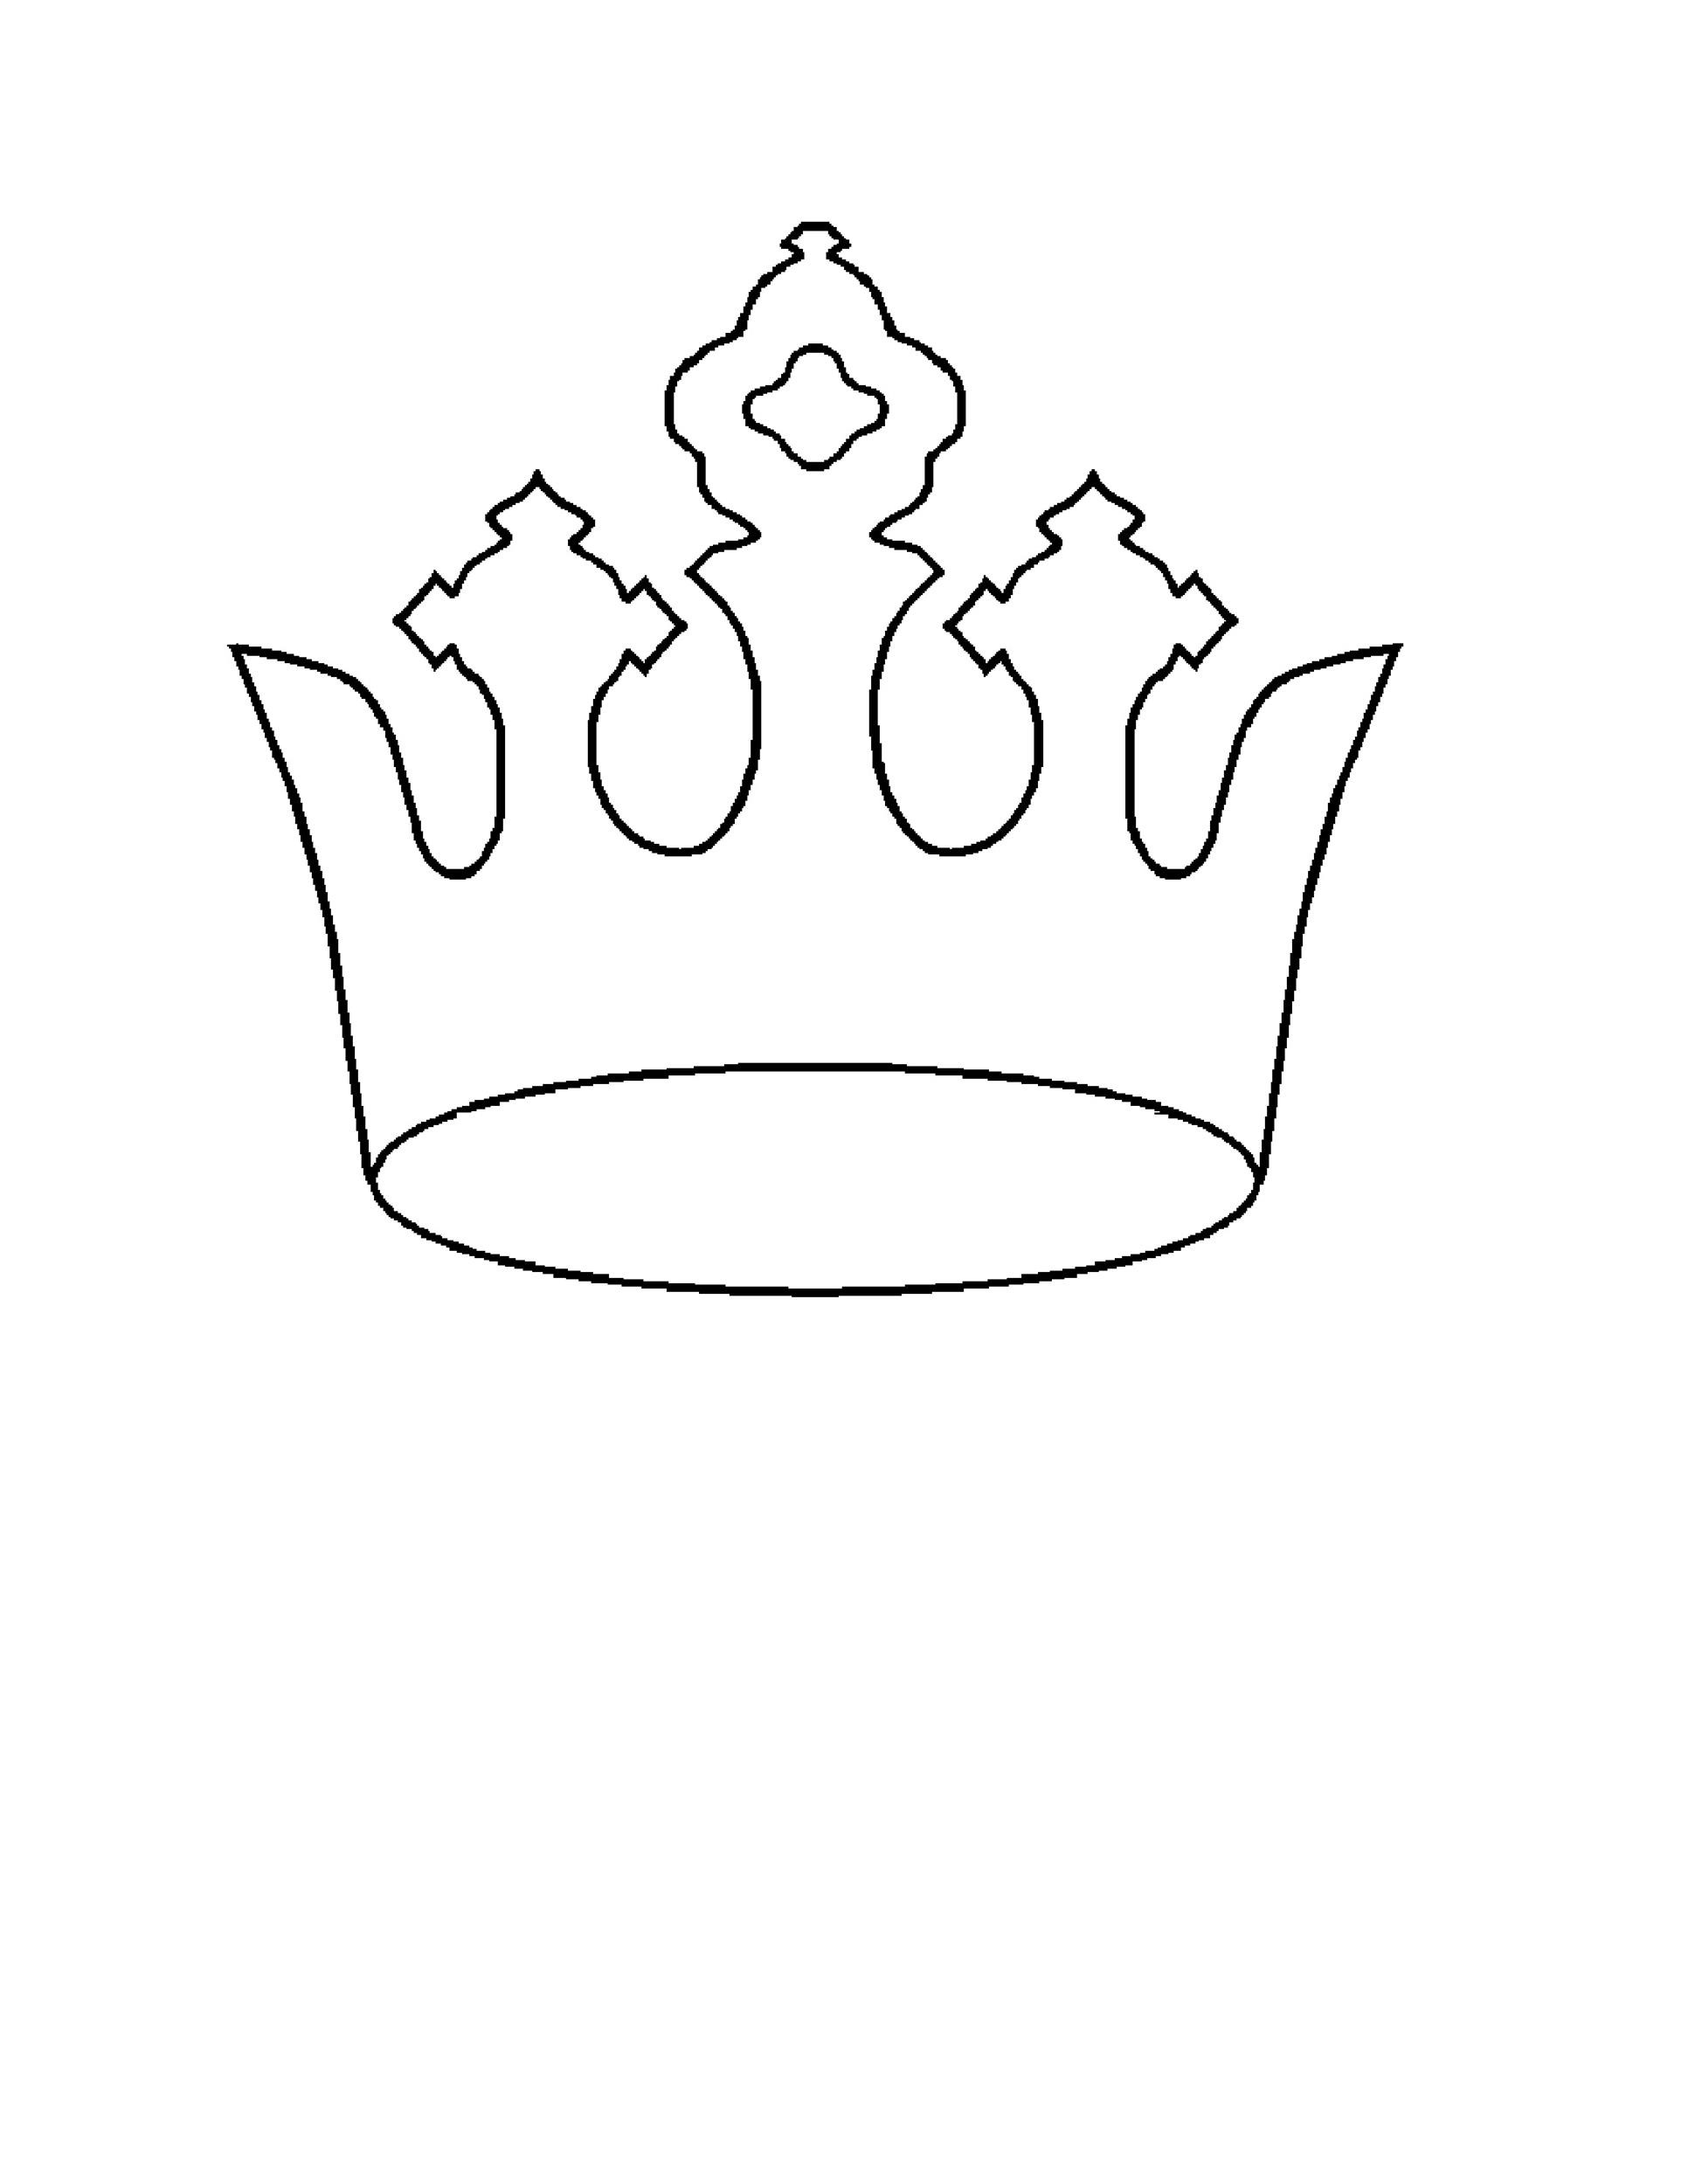 photograph regarding Crown Template Printable named 45 No cost Paper Crown Templates ᐅ Template Lab